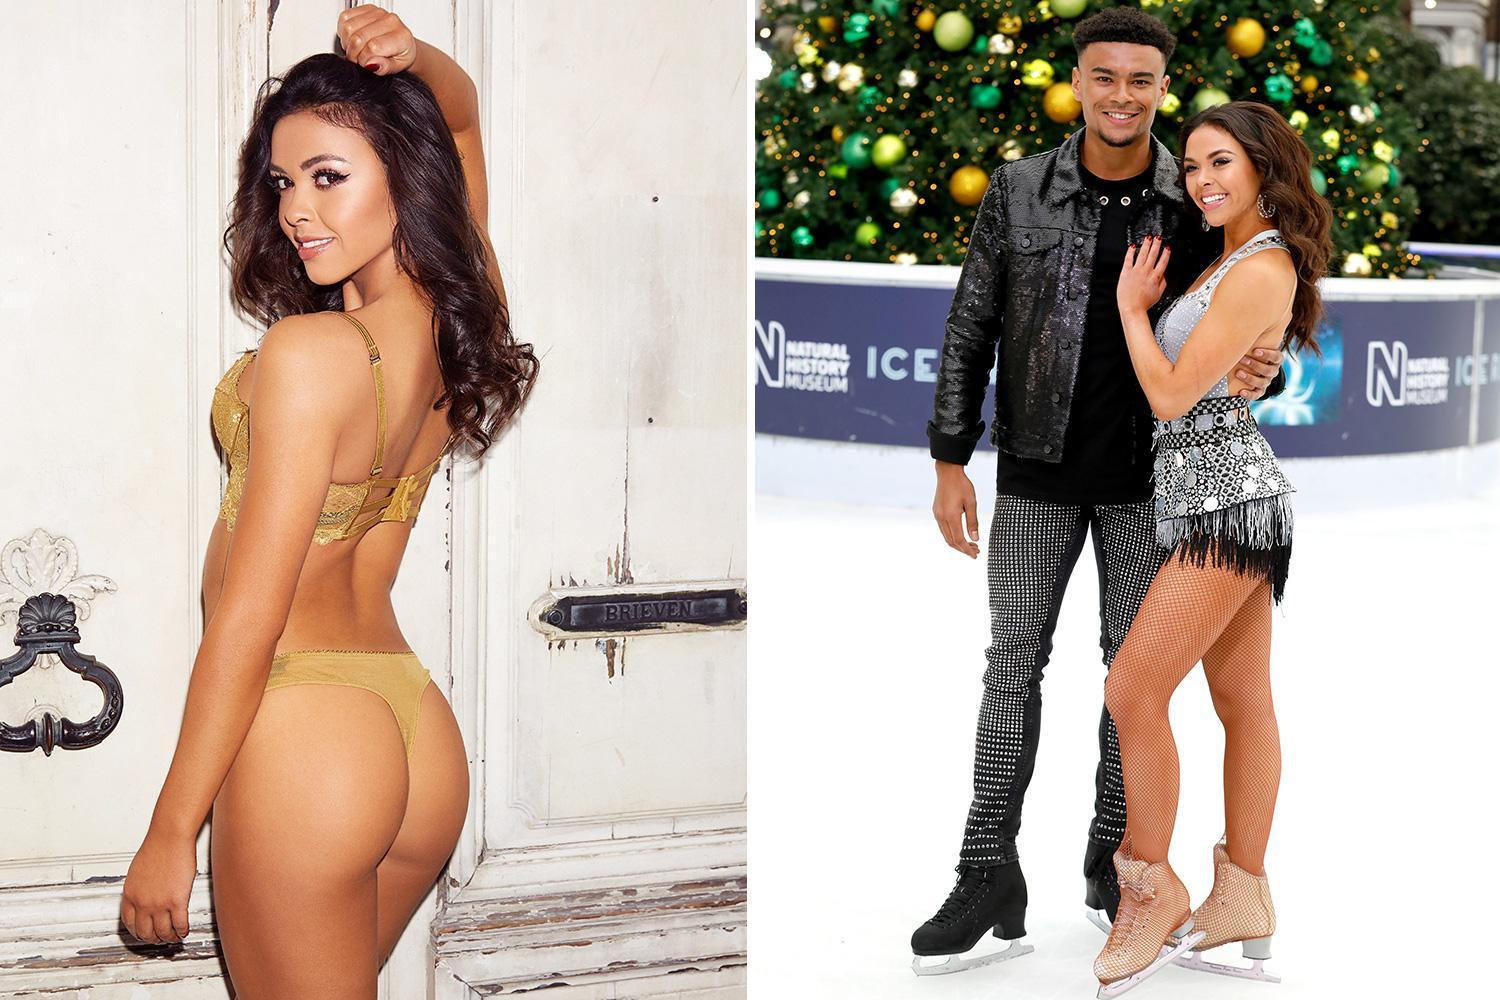 Dancing On Ice's Vanessa Bauer wows in undies as she's paired with Love Island's Wes Nelson